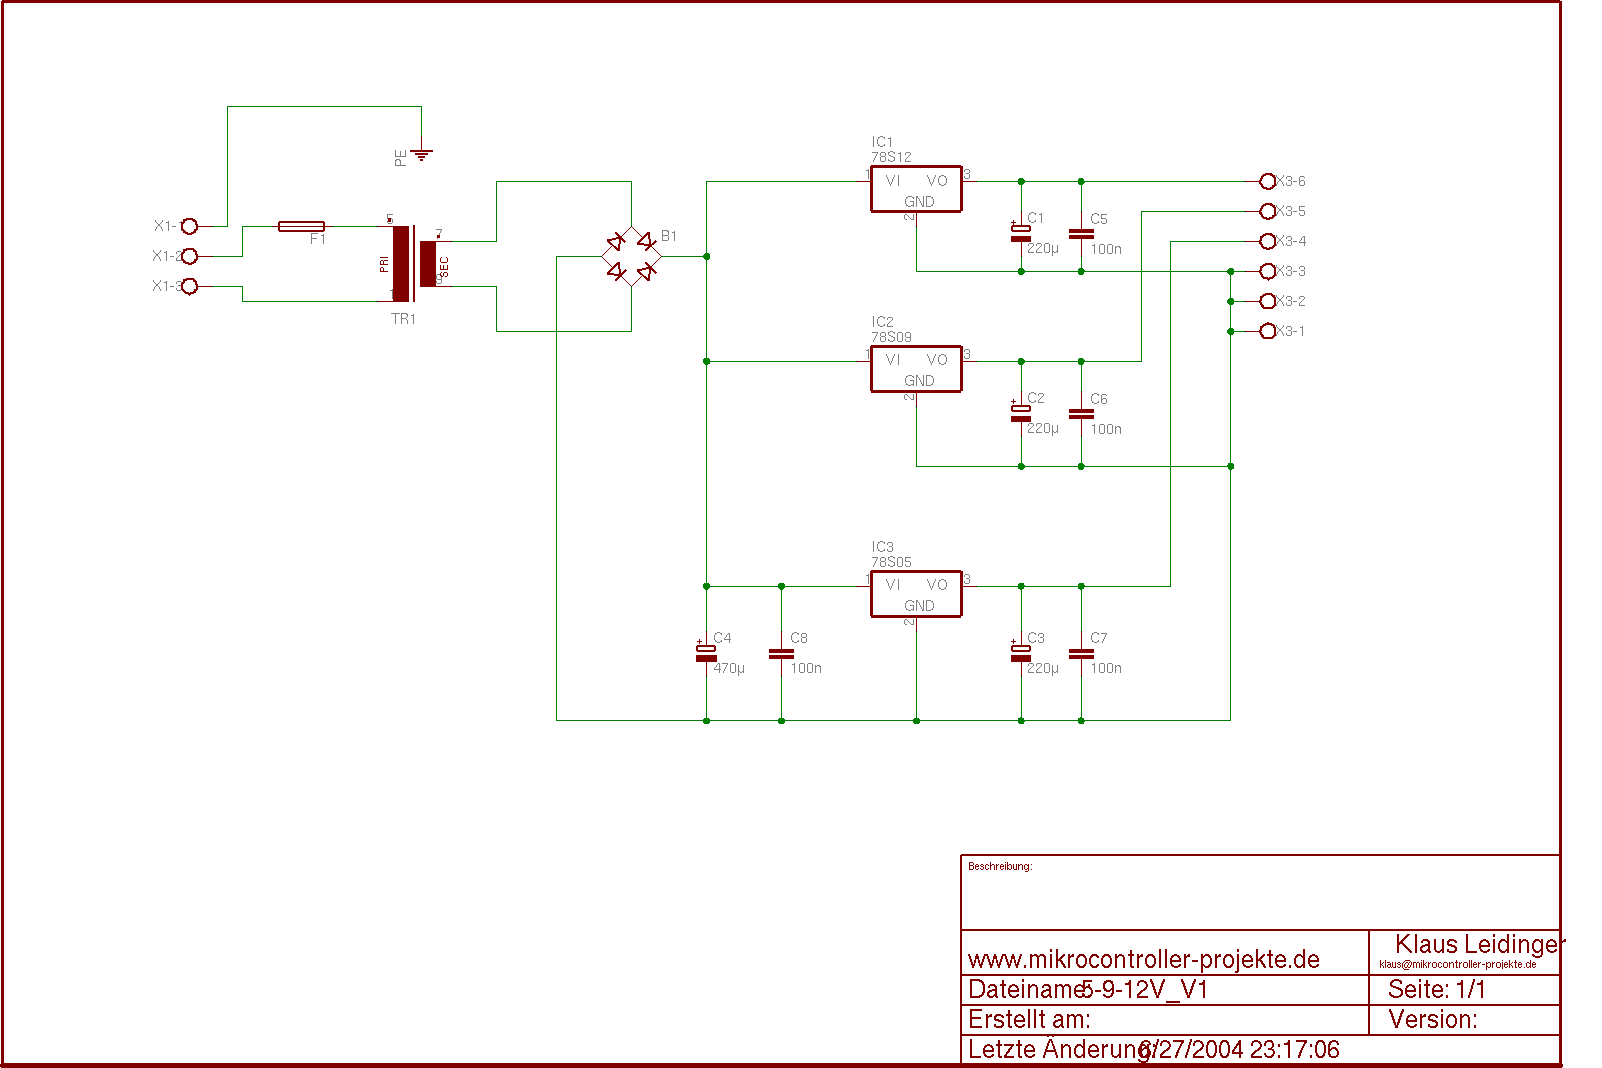 pool pump timer wiring diagram images pool pump timer wiring timer wiring diagram pool pump tanning bed